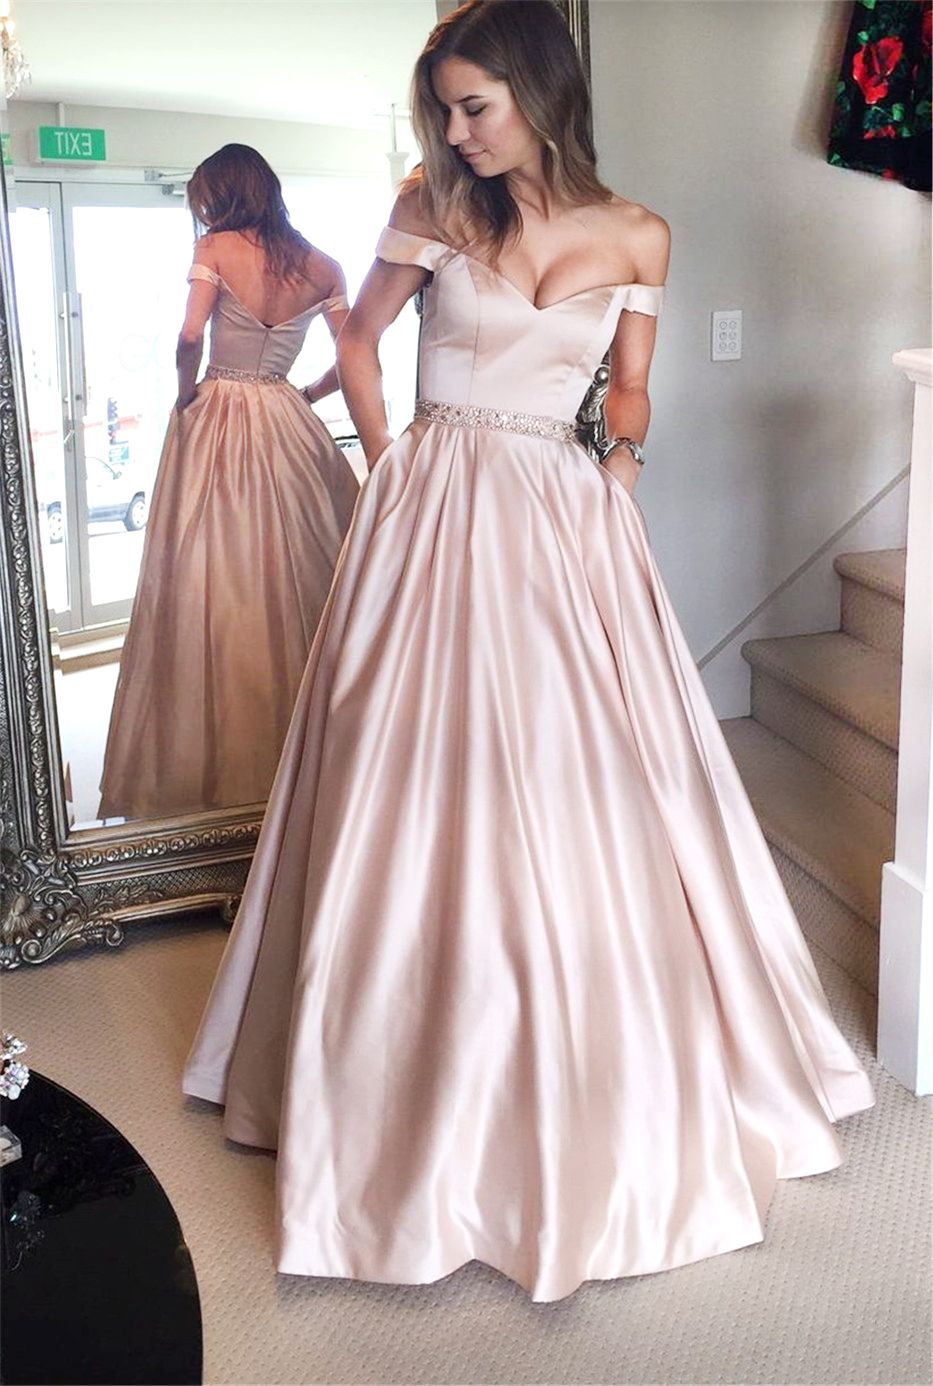 Aline off the shoulder prom dresse pink prom dresses dress